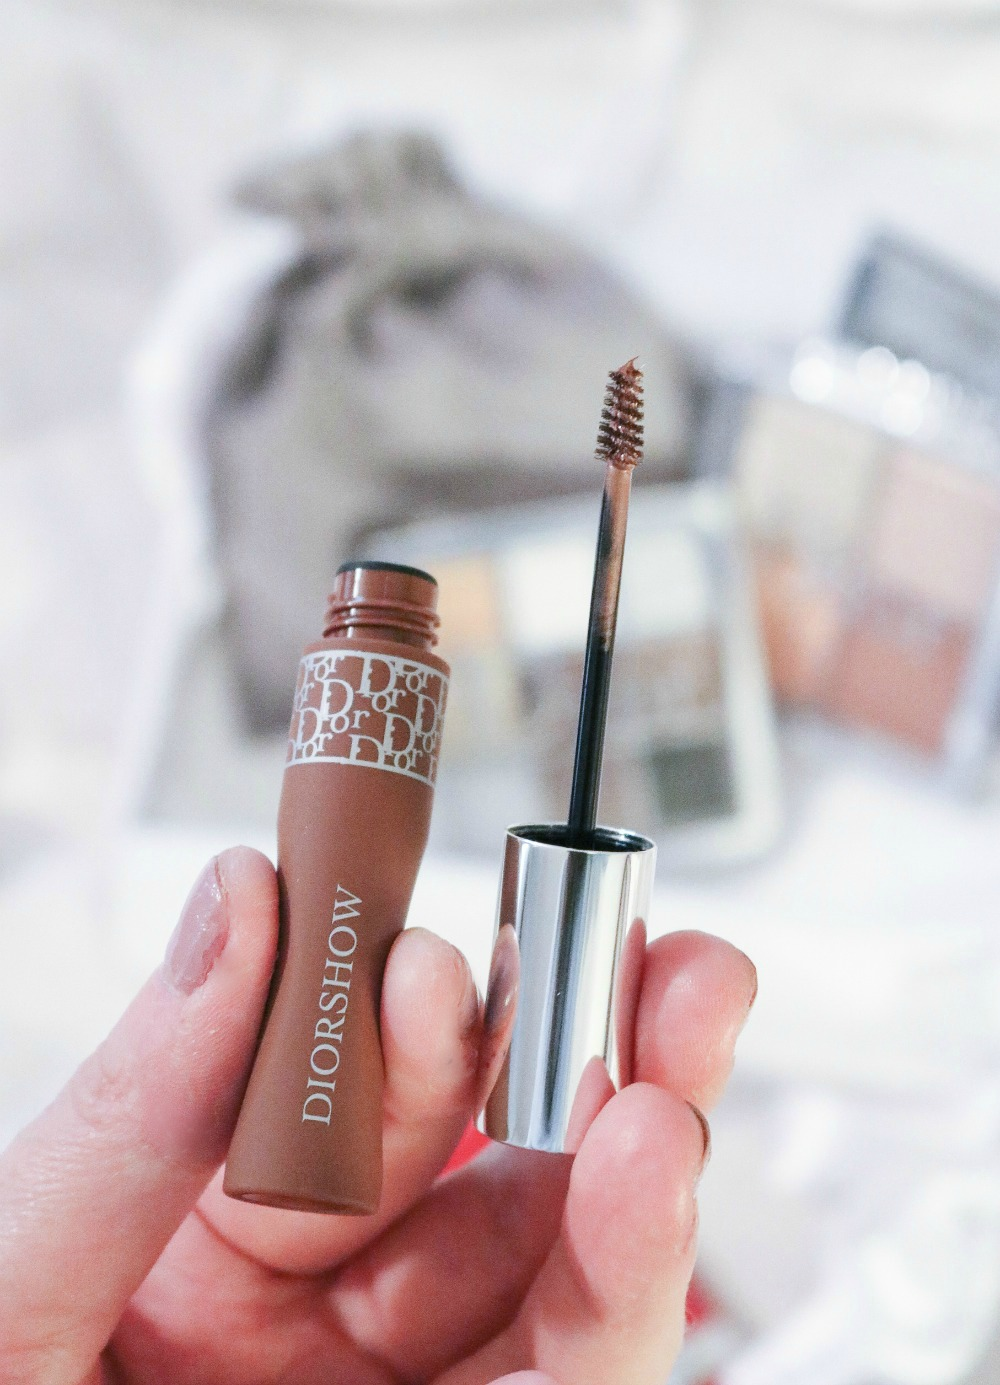 Dior Pump n Brow Mascara Review I DreaminLace.com